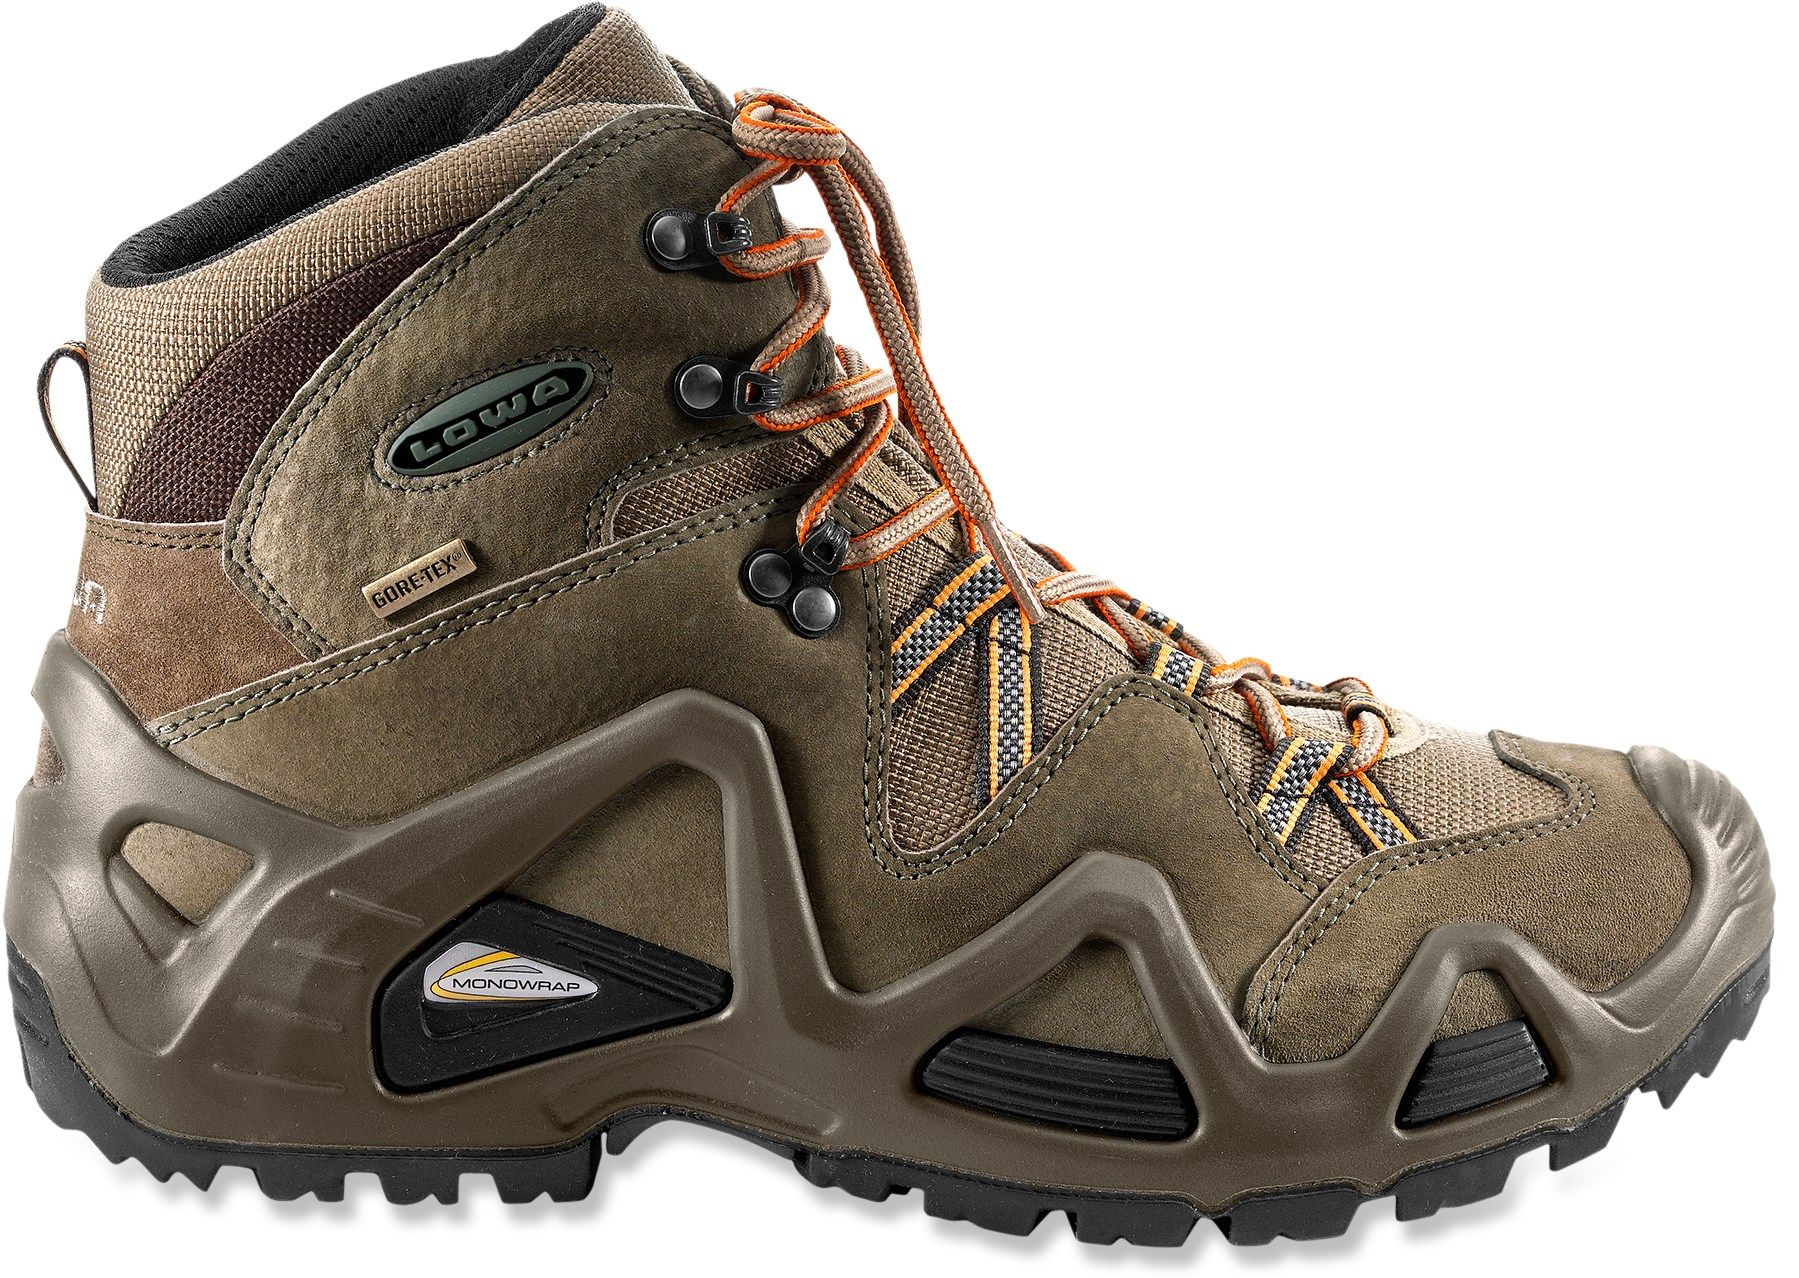 62c458009d4 Zephyr GTX Mid Hiking Boots - Men's in 2019 | Essential Gear ...